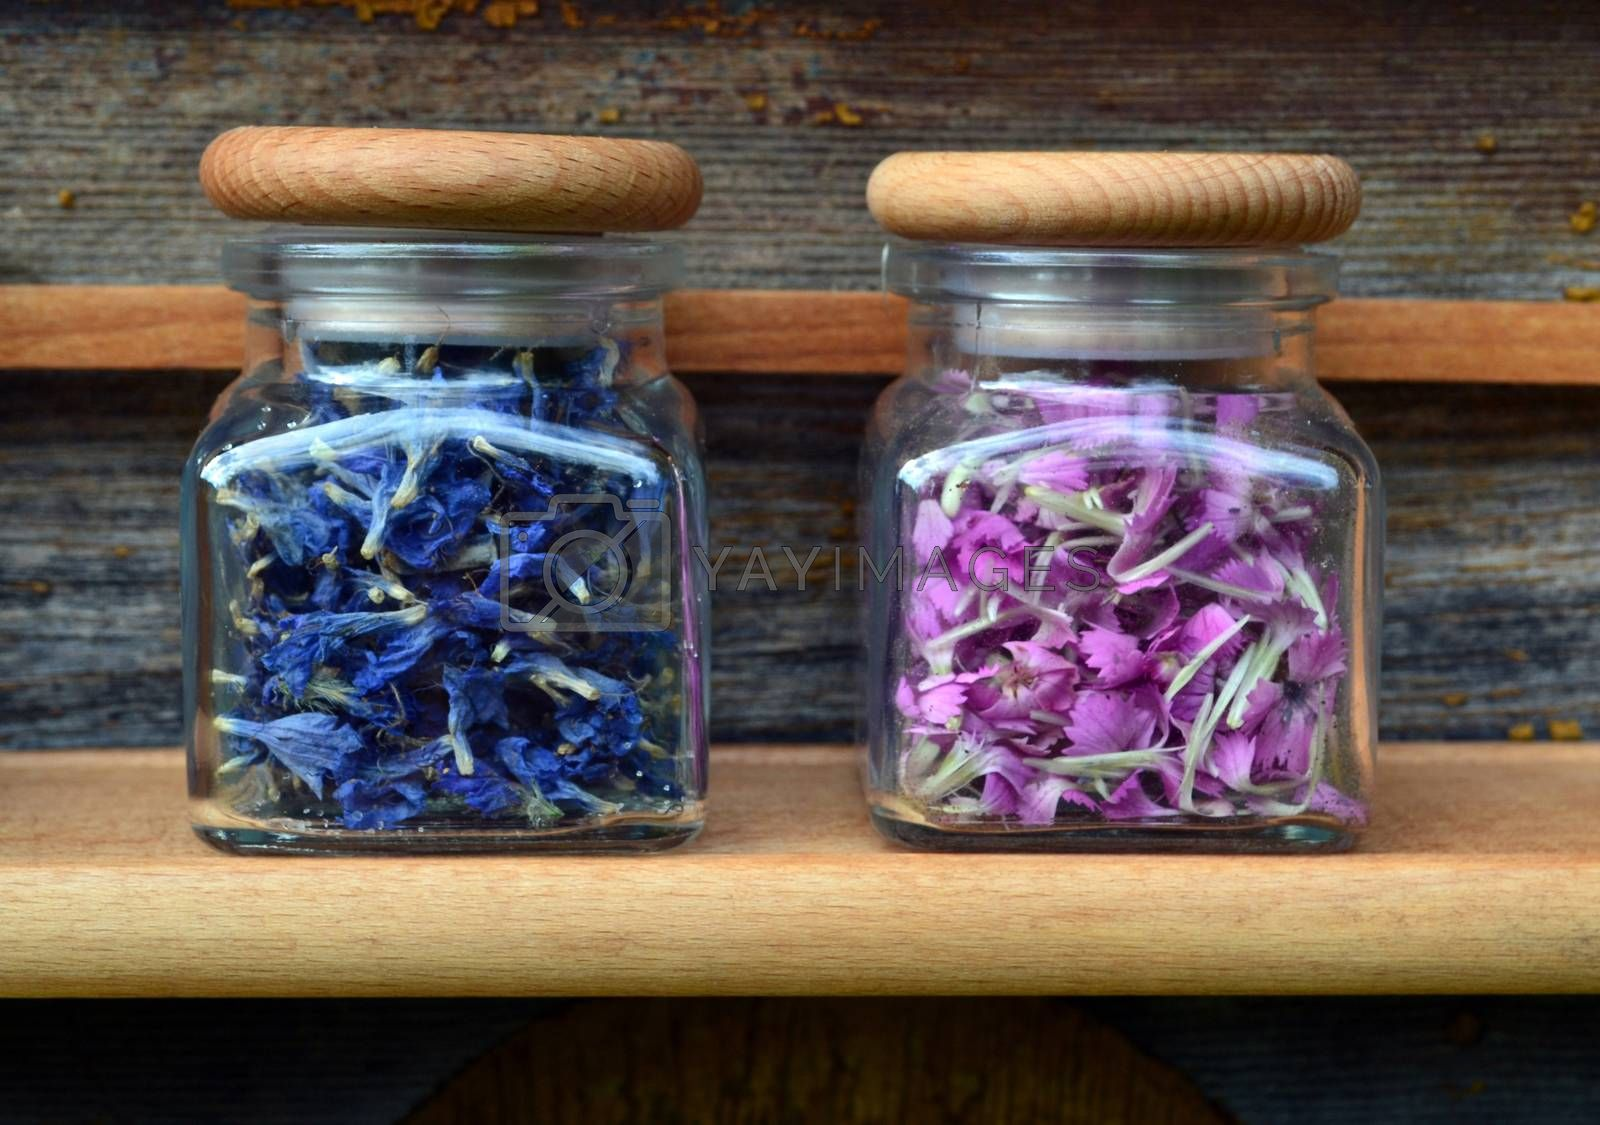 Pink and blue flowers in transparent jars